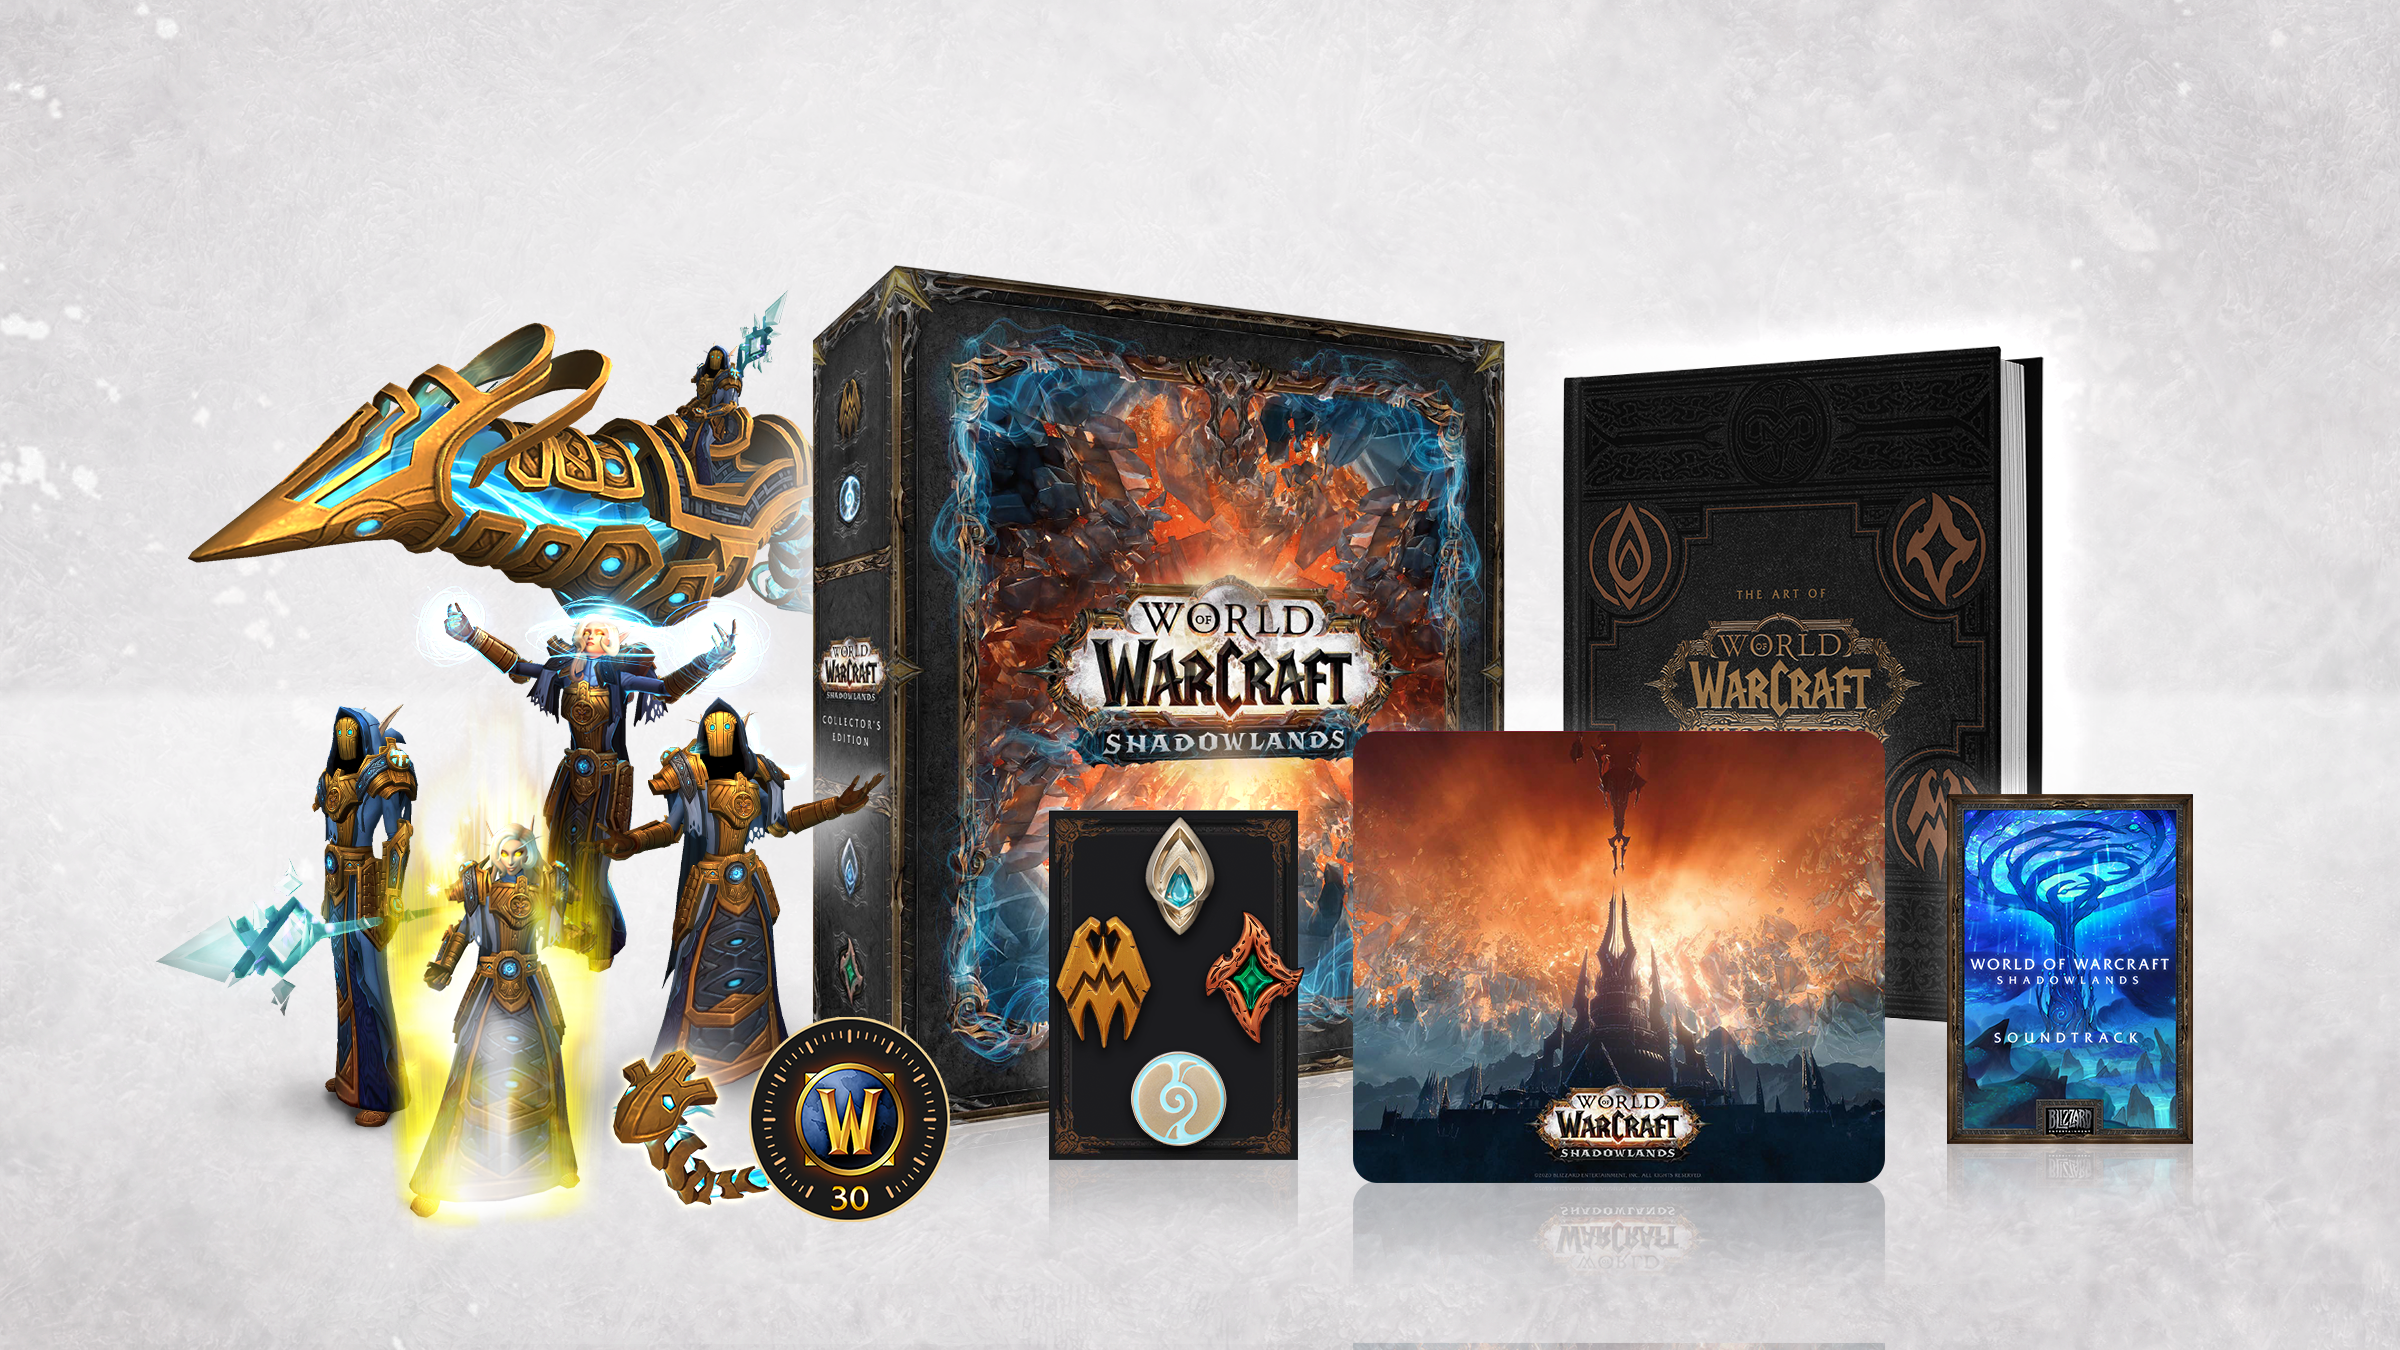 [Updated 27 Aug.] Get the Shadowlands Collector's Edition